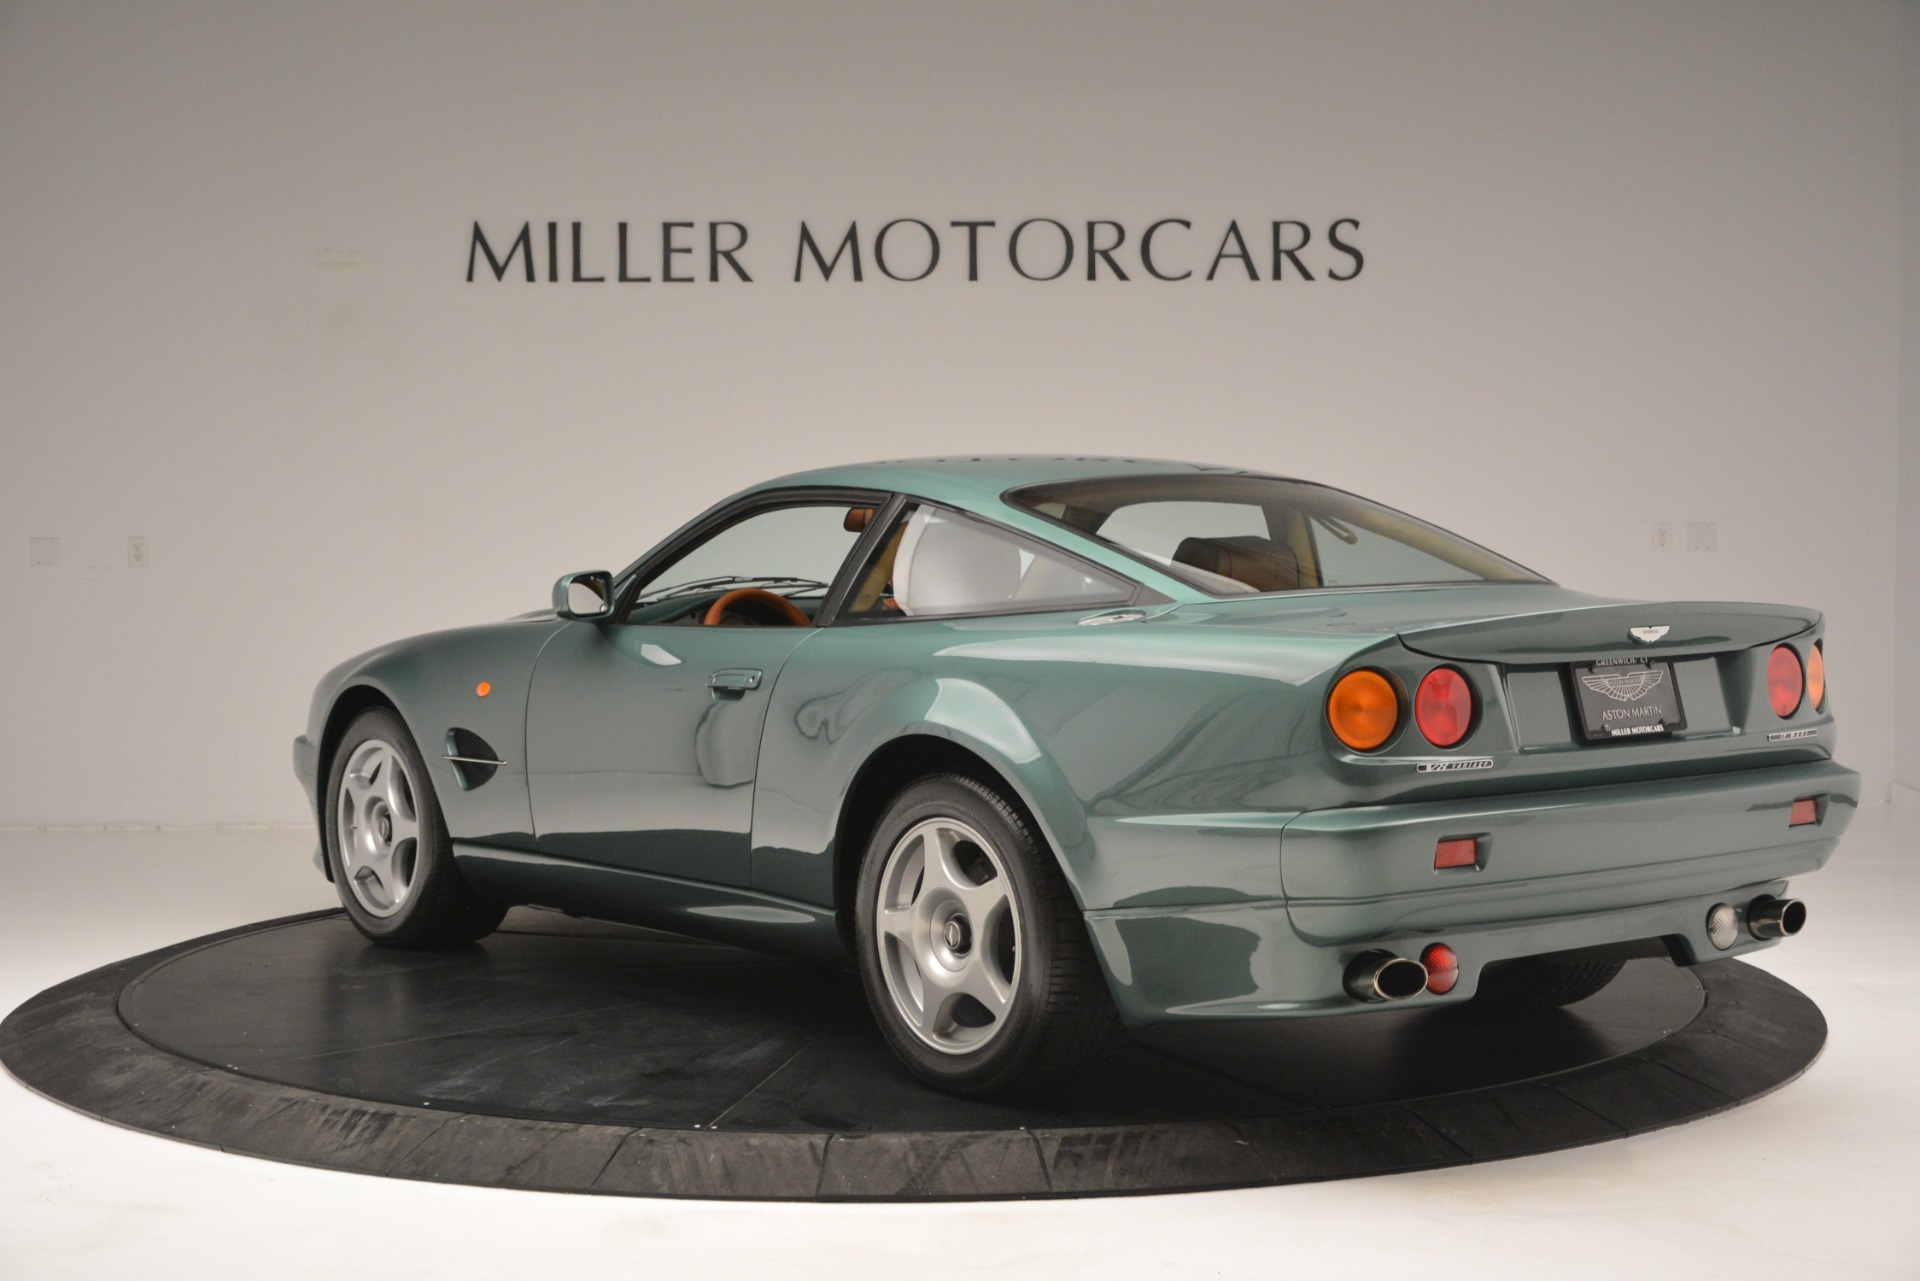 Used 1999 Aston Martin V8 Vantage Le Mans V600 Coupe For Sale In Westport, CT 2789_p6